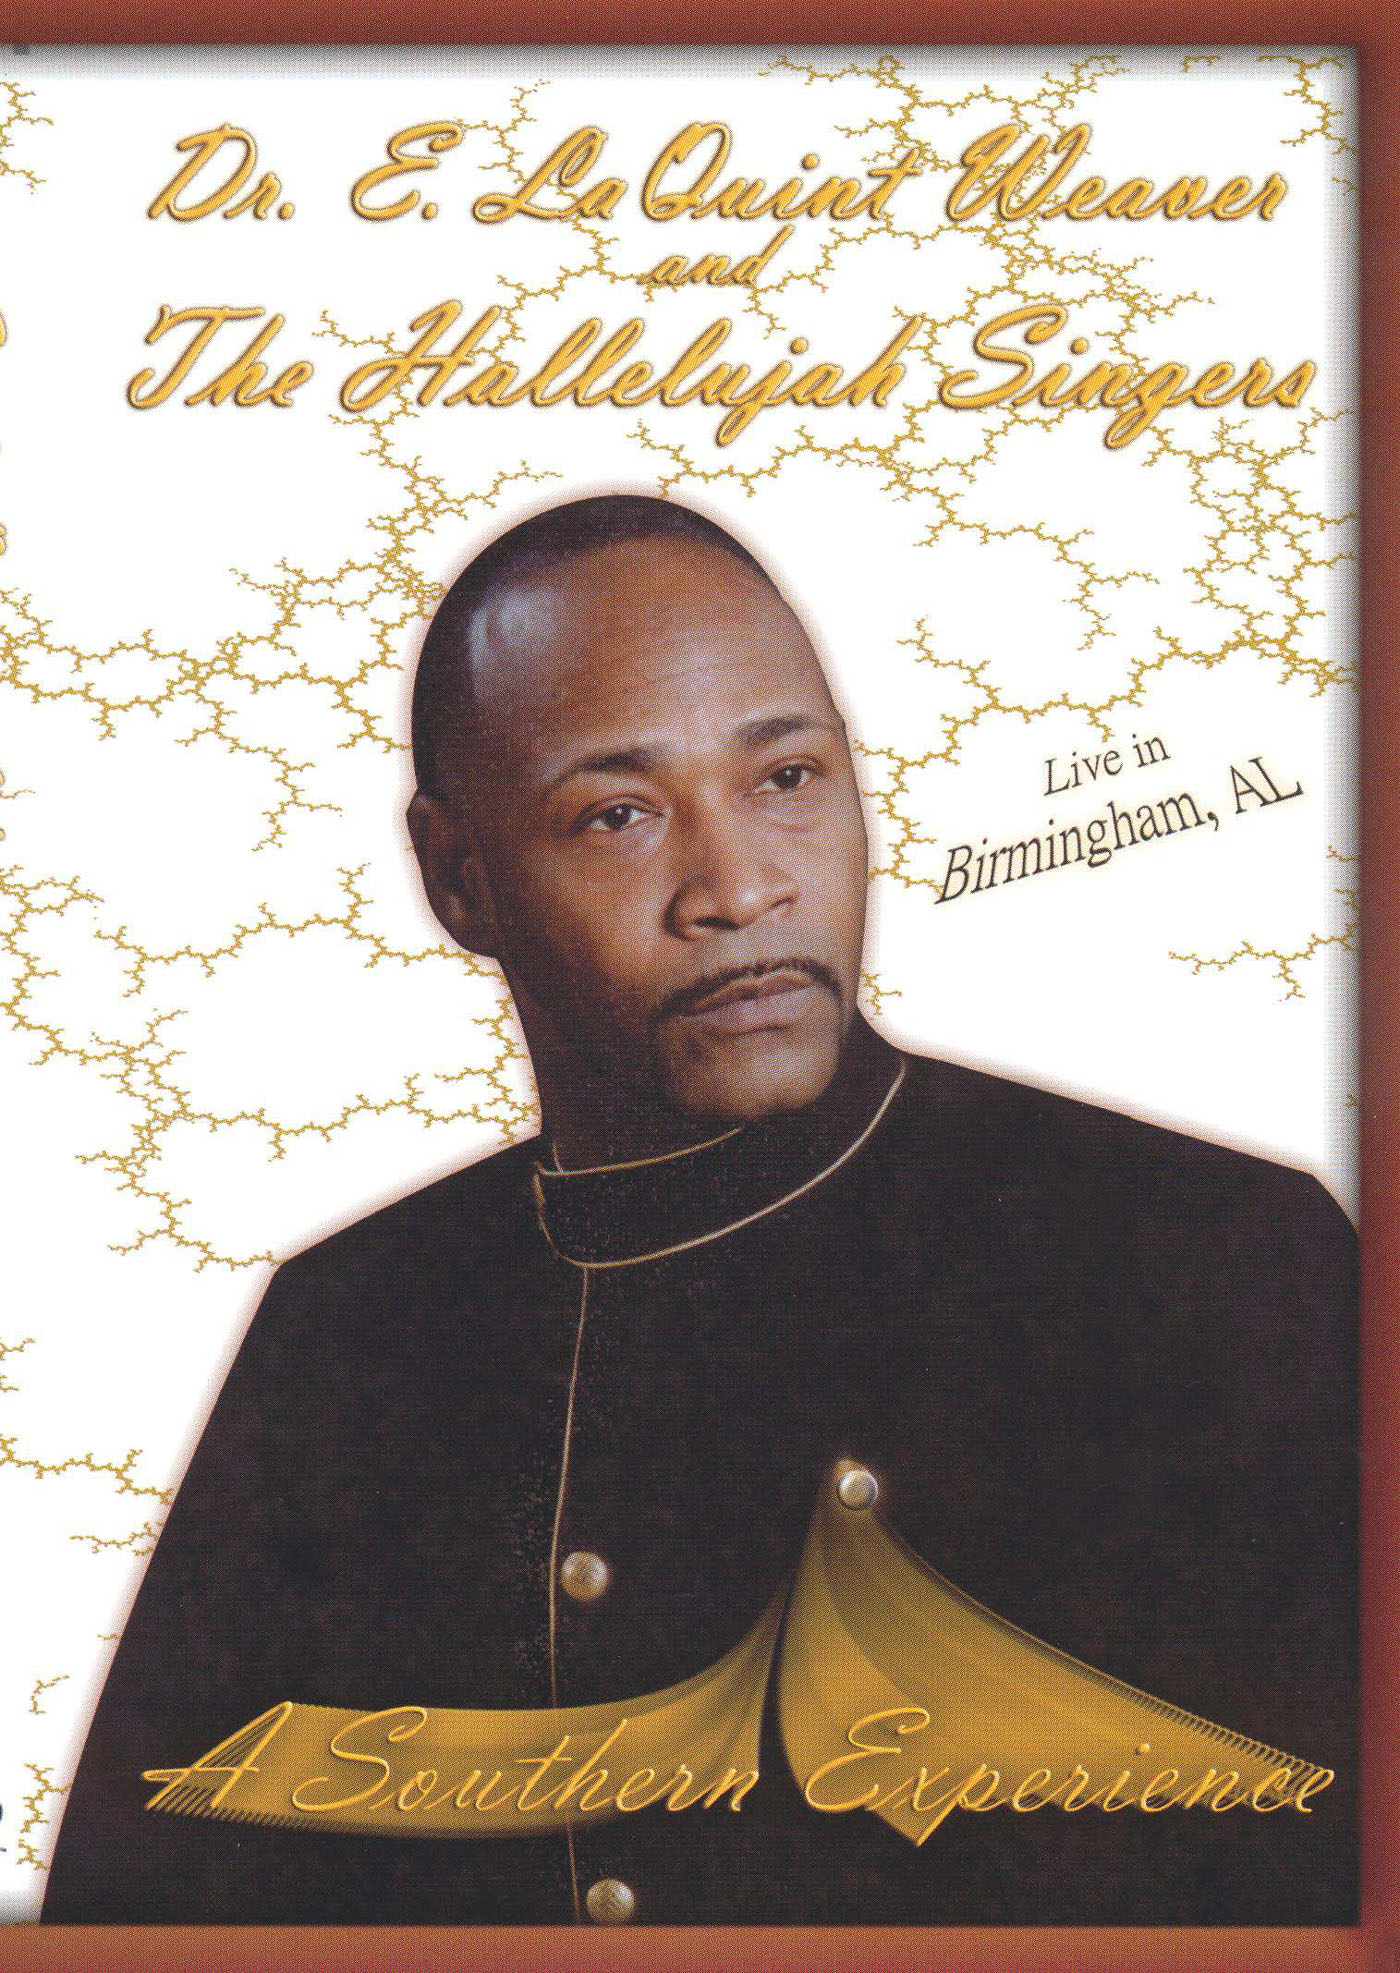 Dr. E. LaQuint Weaver and the Hallelujah Singers: A Southern Experience - Live in Birmingham,  AL